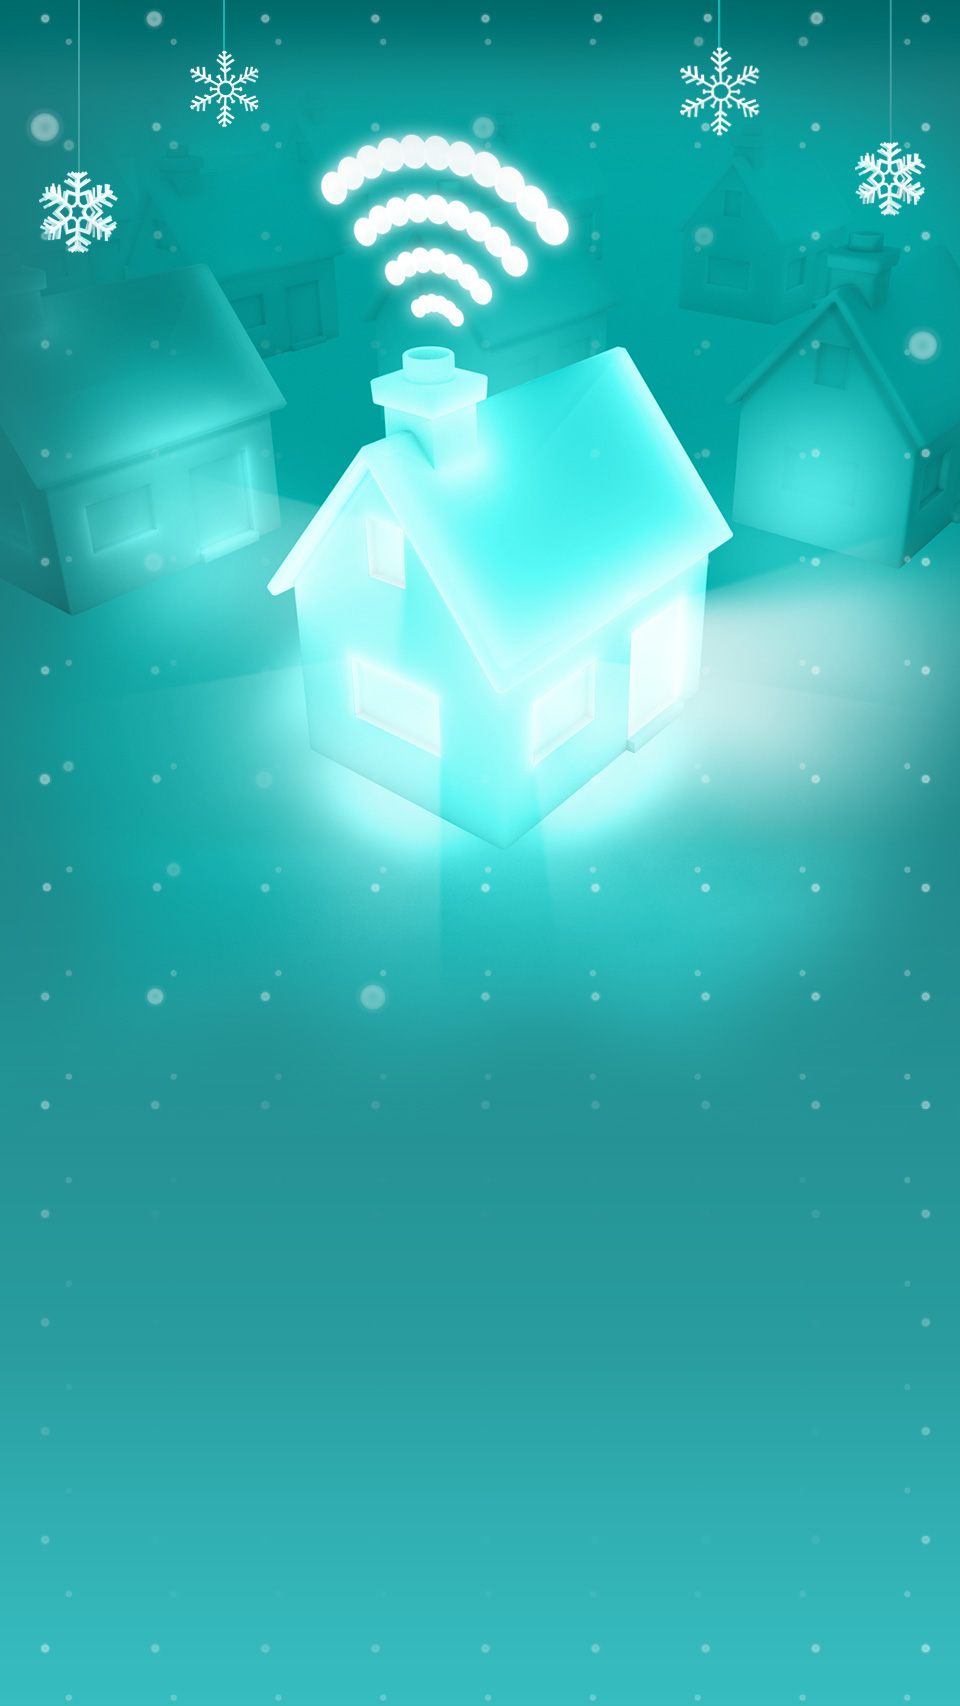 Aqua house with snowflakes